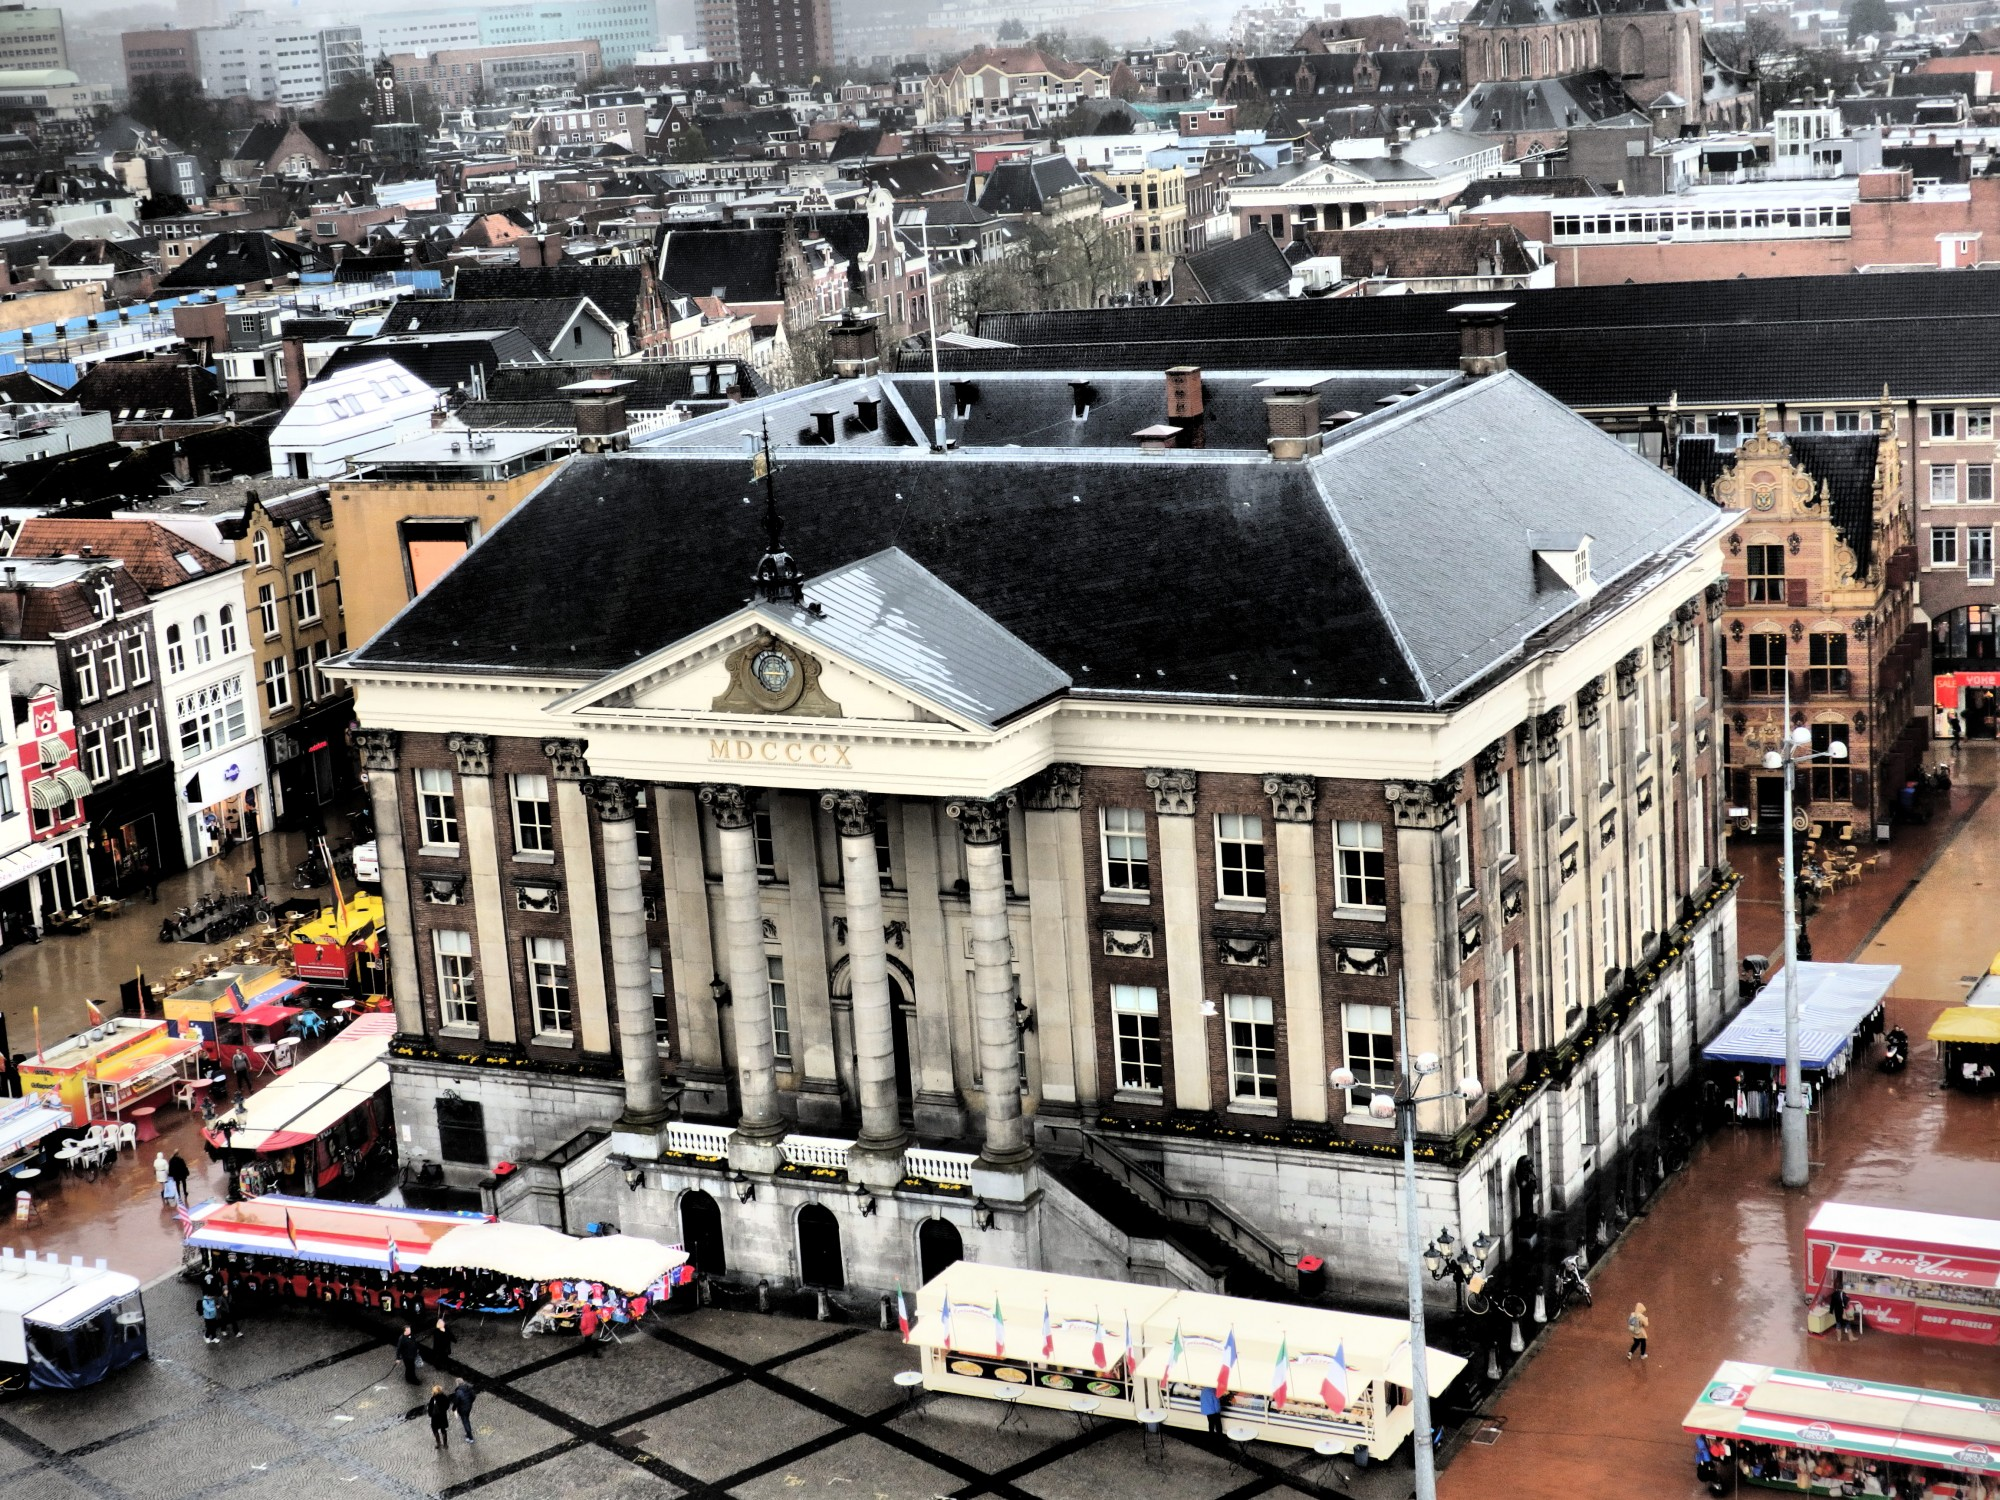 The stadshuis: the old city hall of Groningen, as seen from the Martinitoren